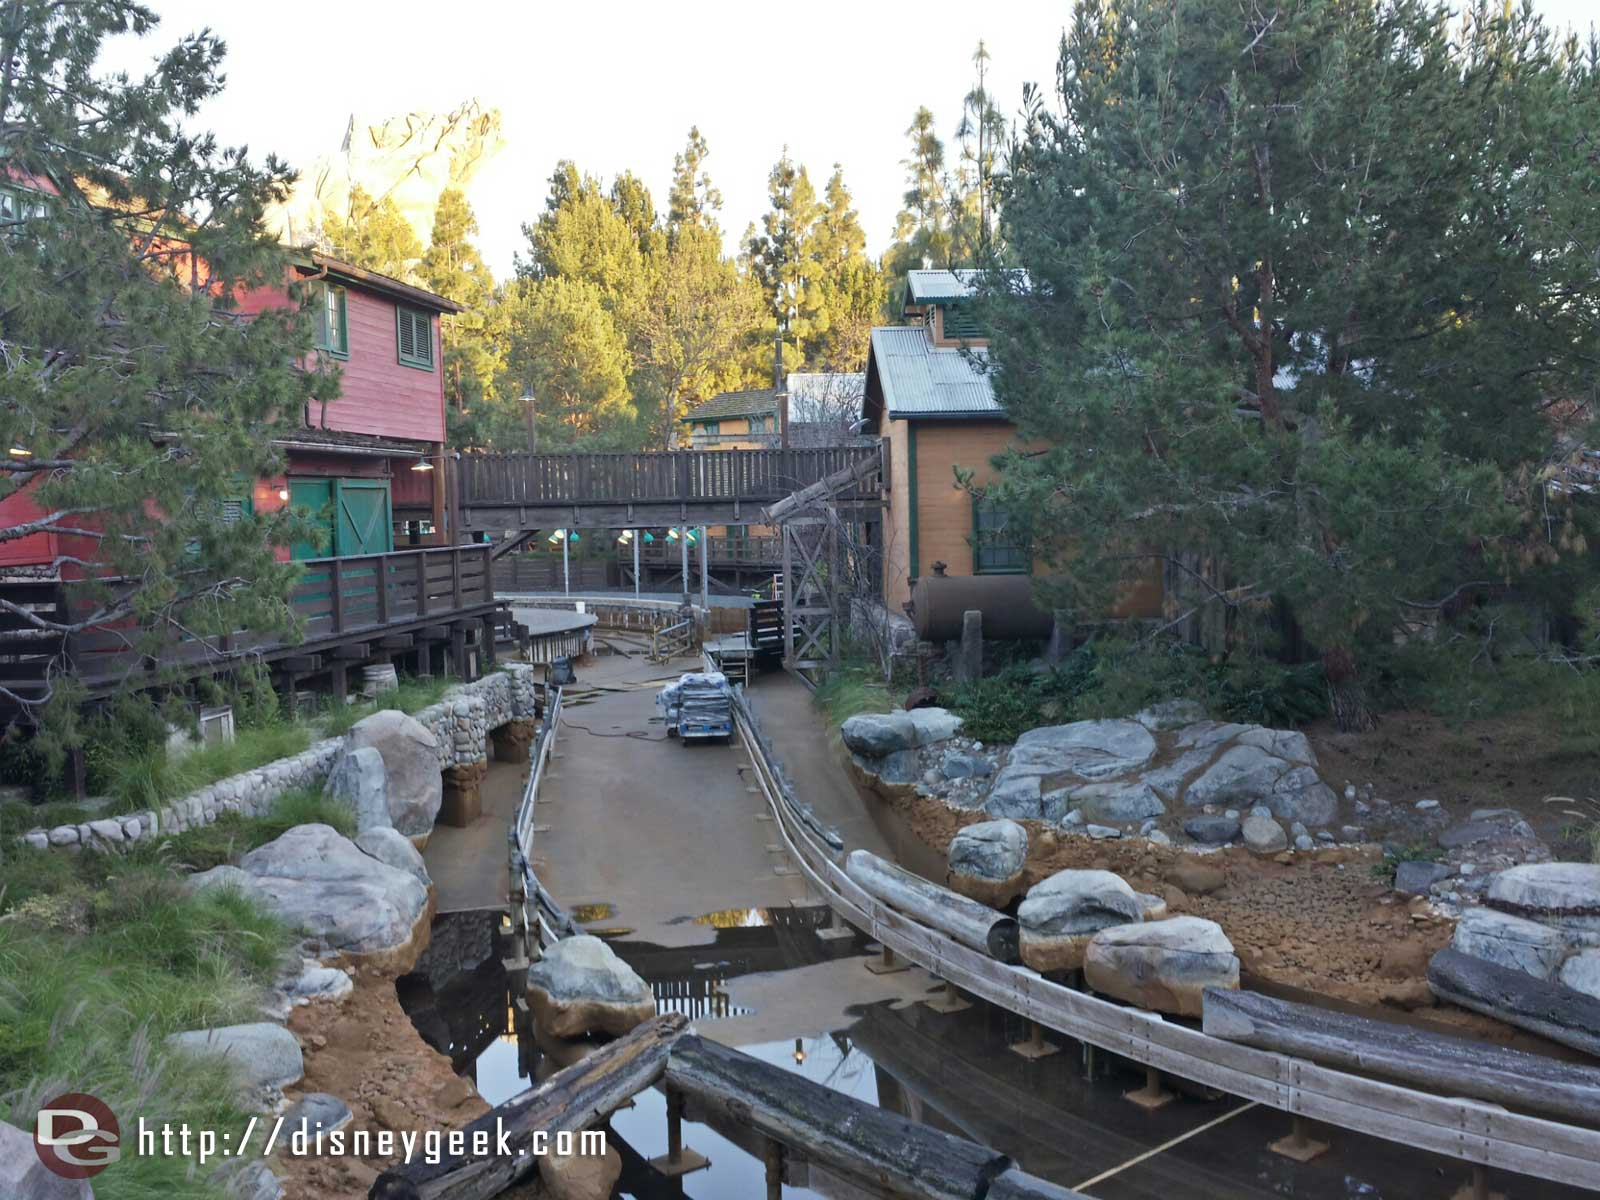 Grizzly River Run is closed for it's winter renovations